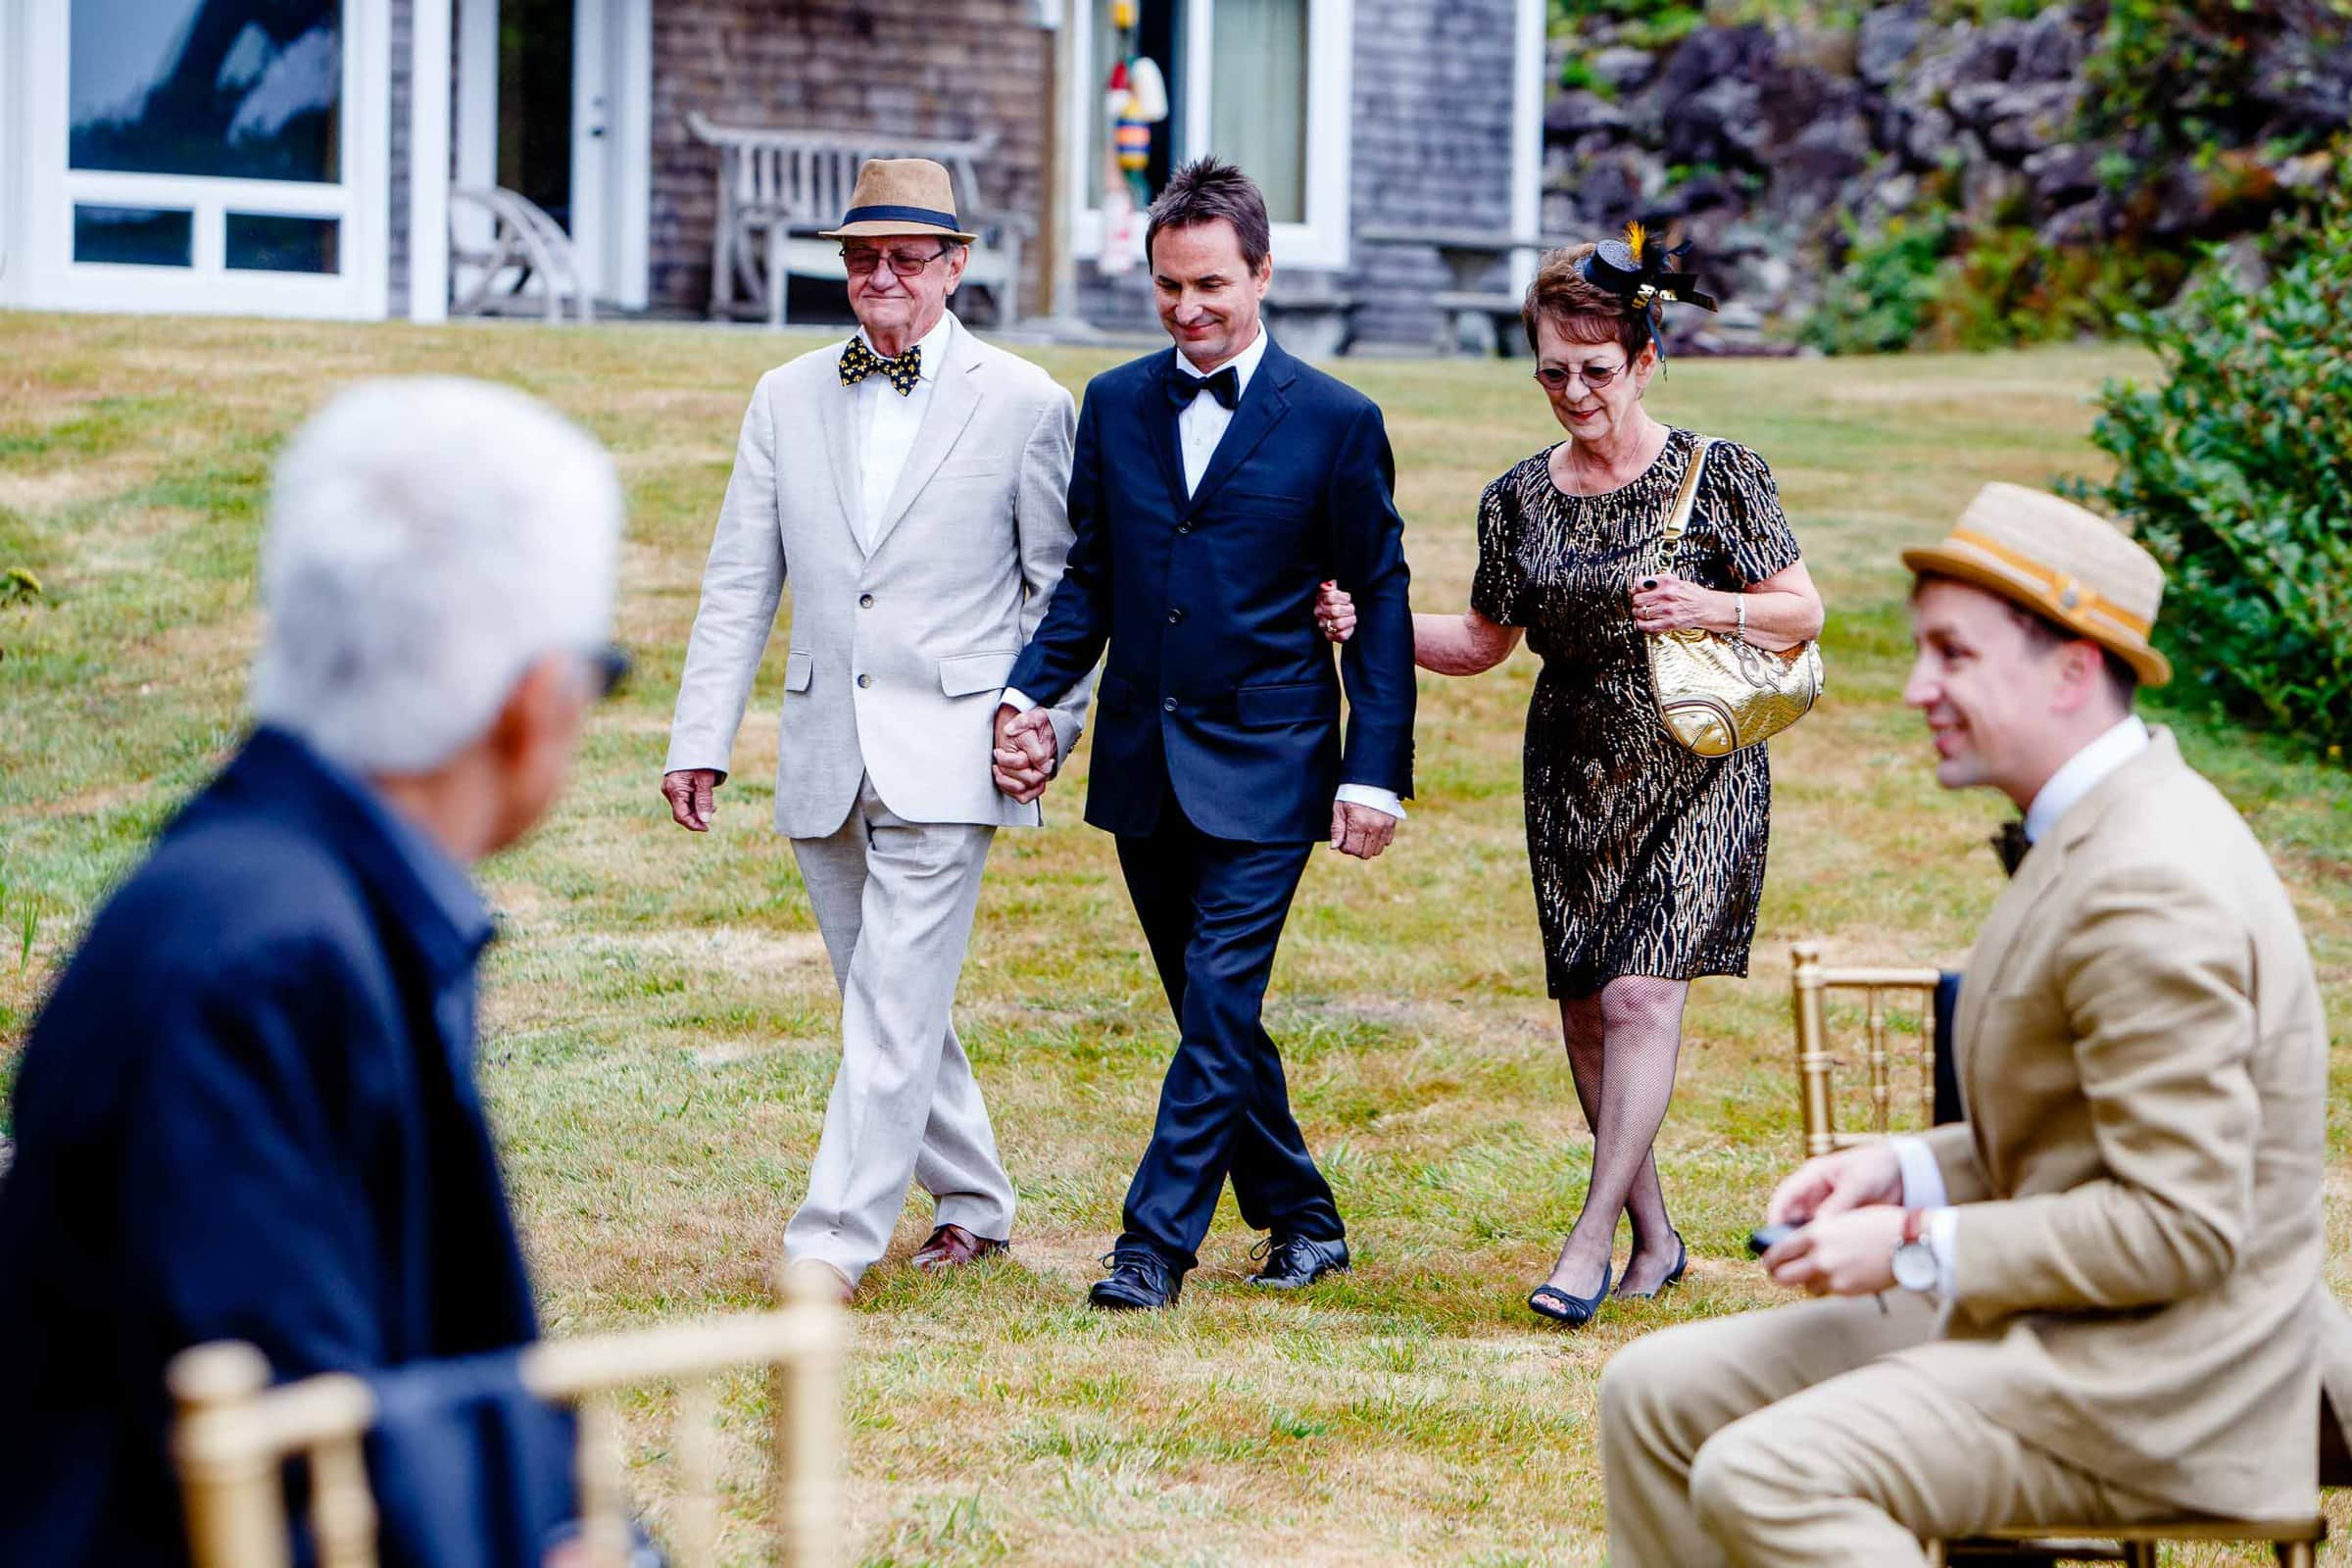 Groom walking into a private Manzanita elopement ceremony in Oregon with guests